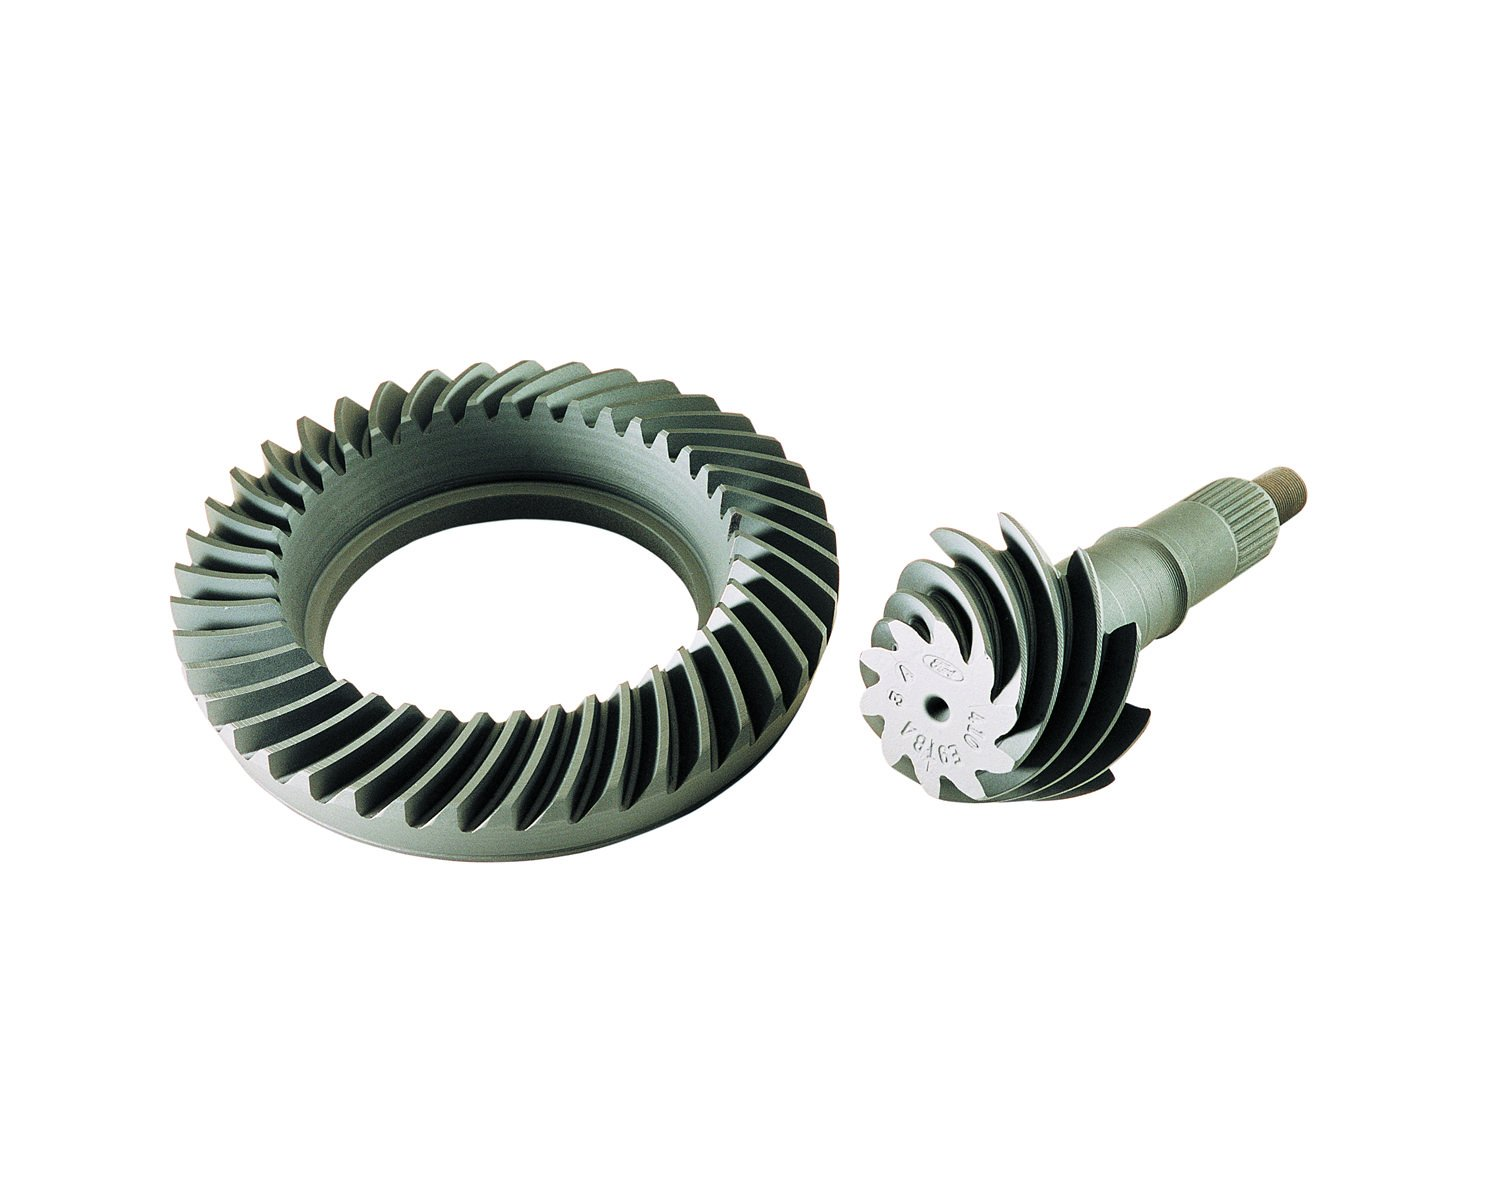 Ford Racing M420988373 8.8'' 3.73 Ring and Pinion